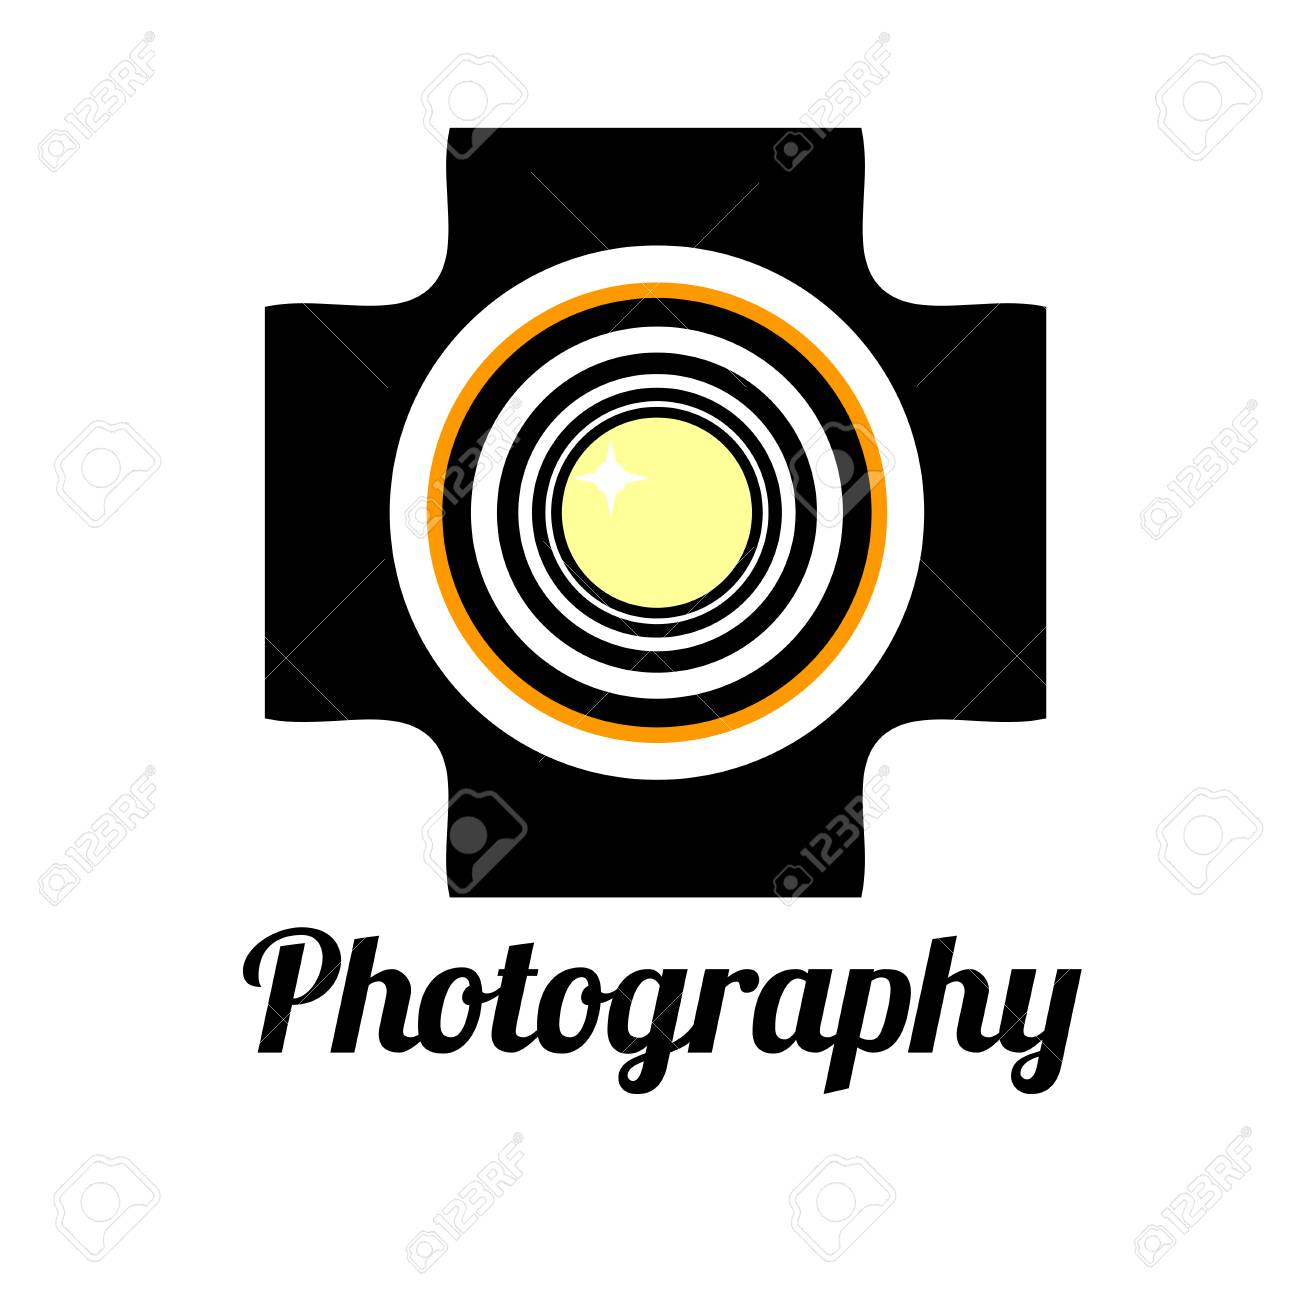 photo studio or professional photographer logo template royalty free